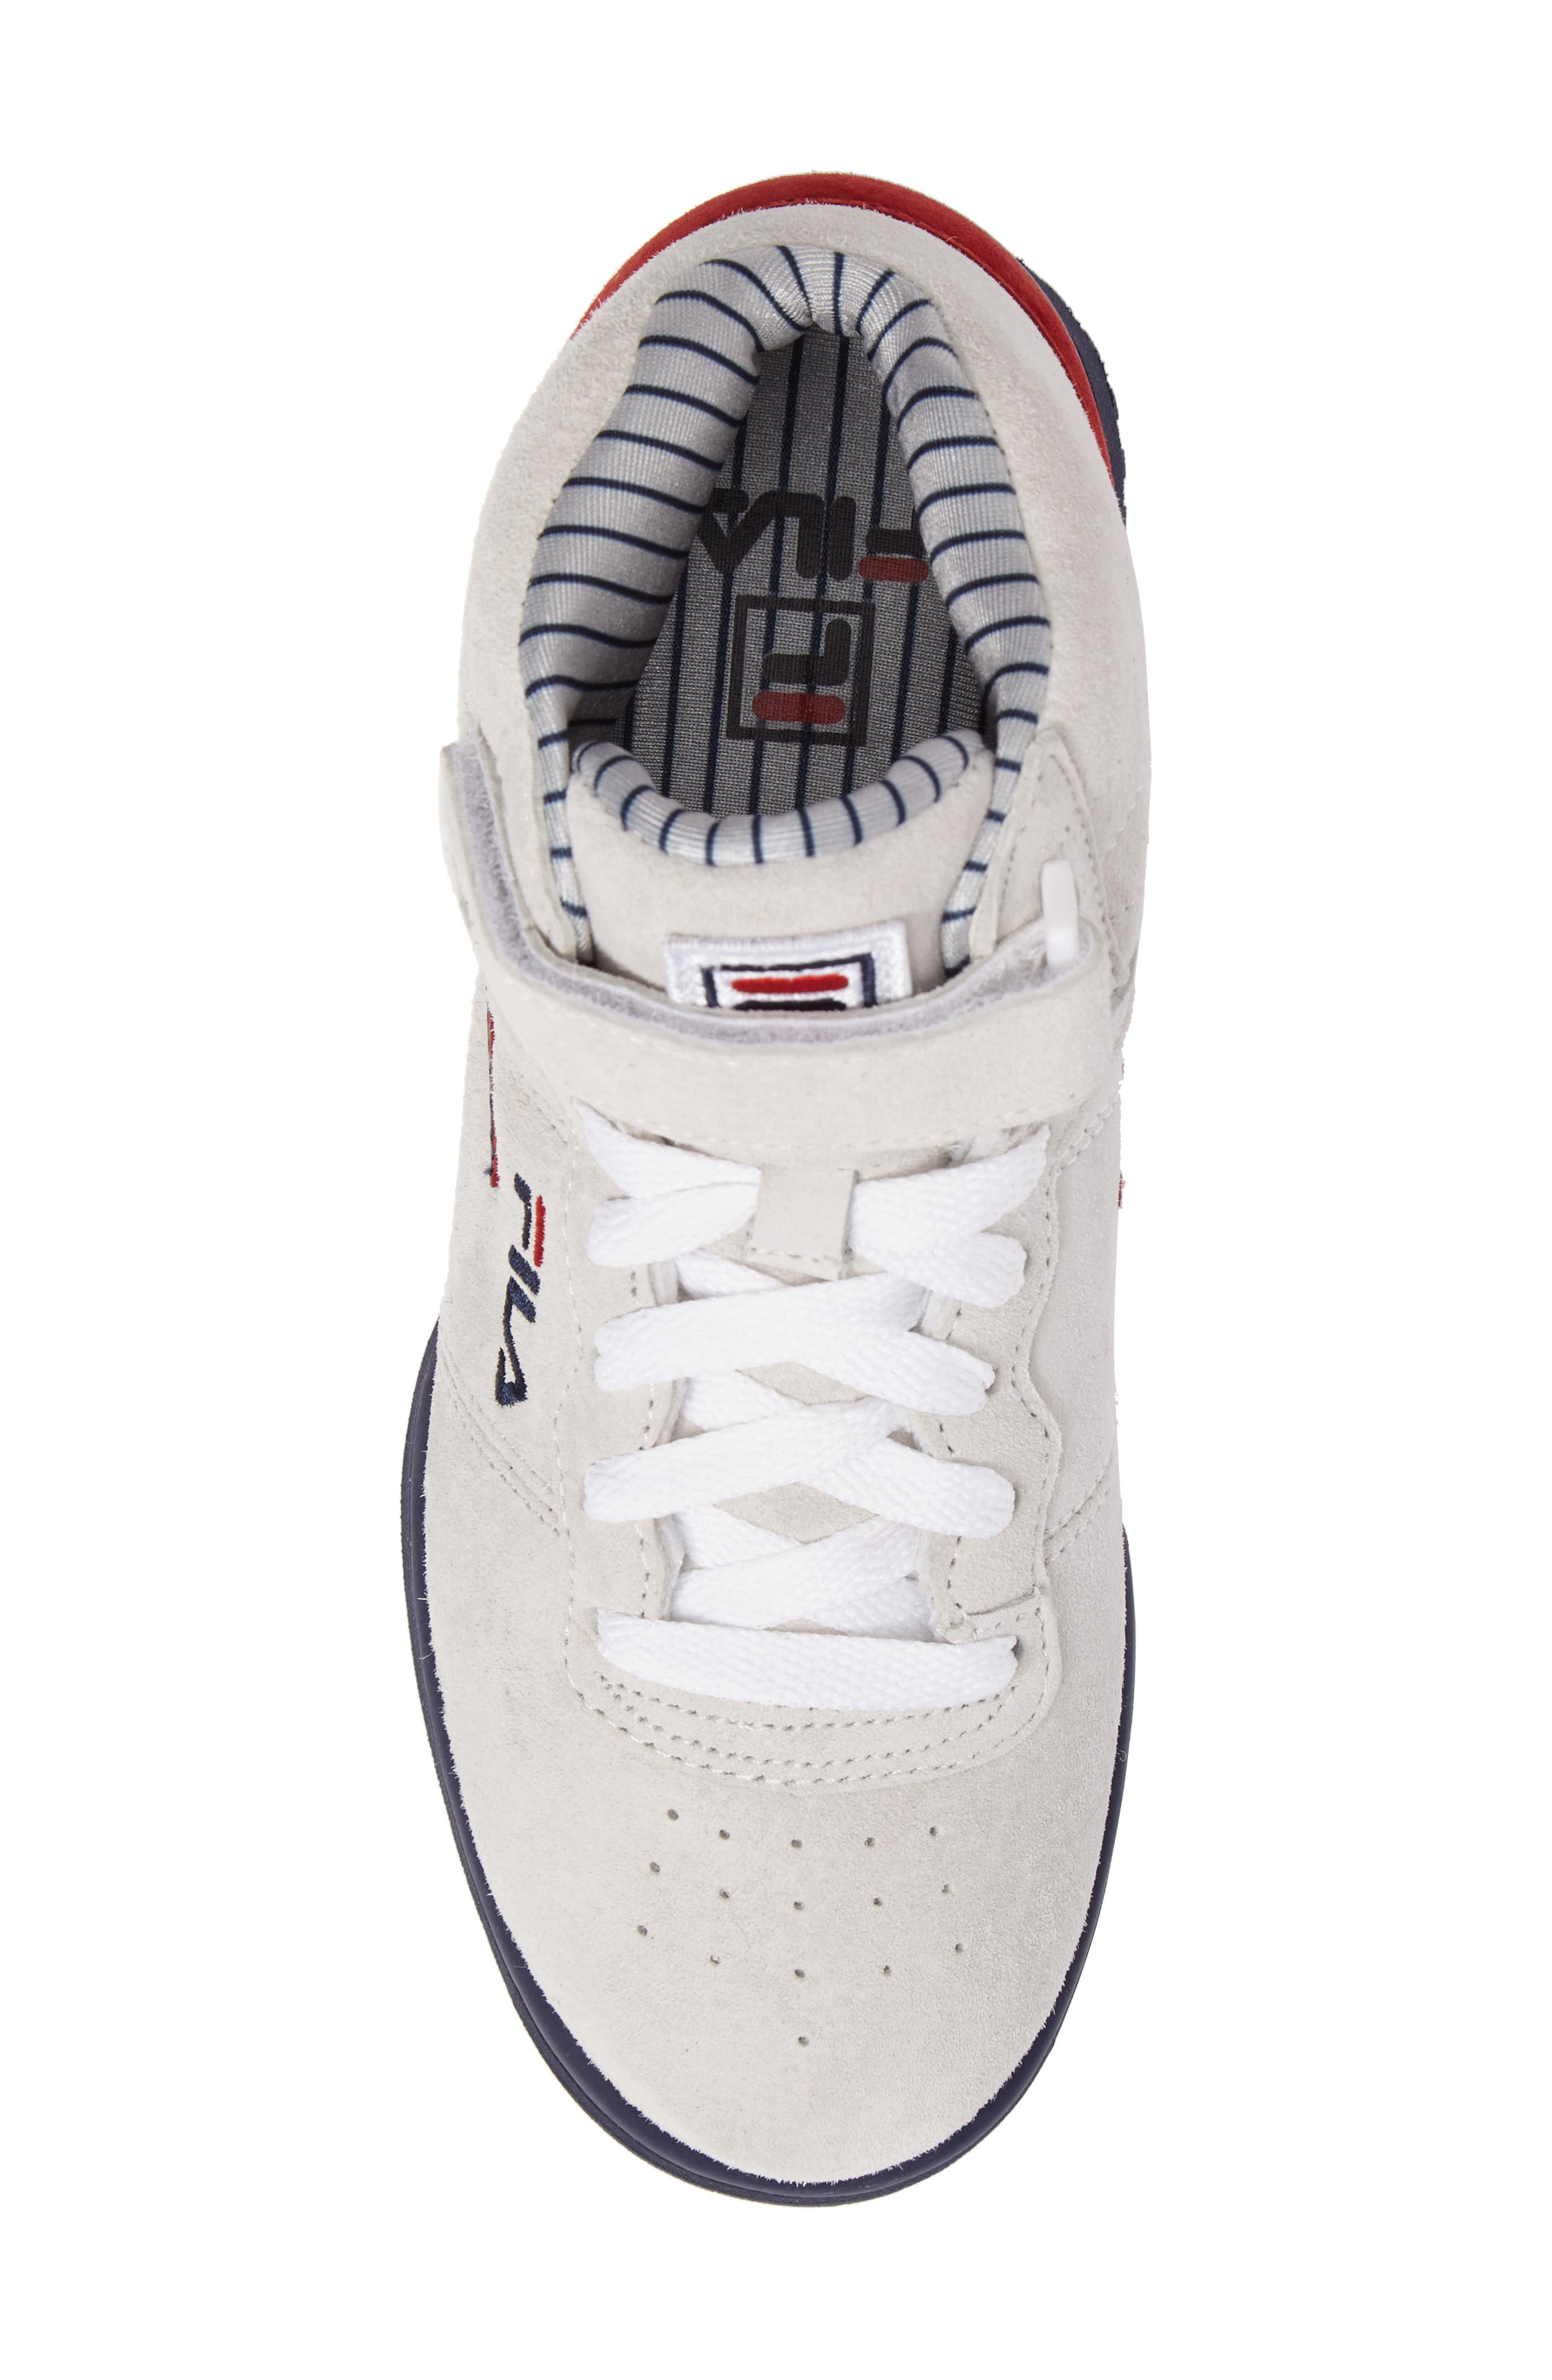 F-13 Mid Pinstripe Sneaker,                             Alternate thumbnail 5, color,                             150